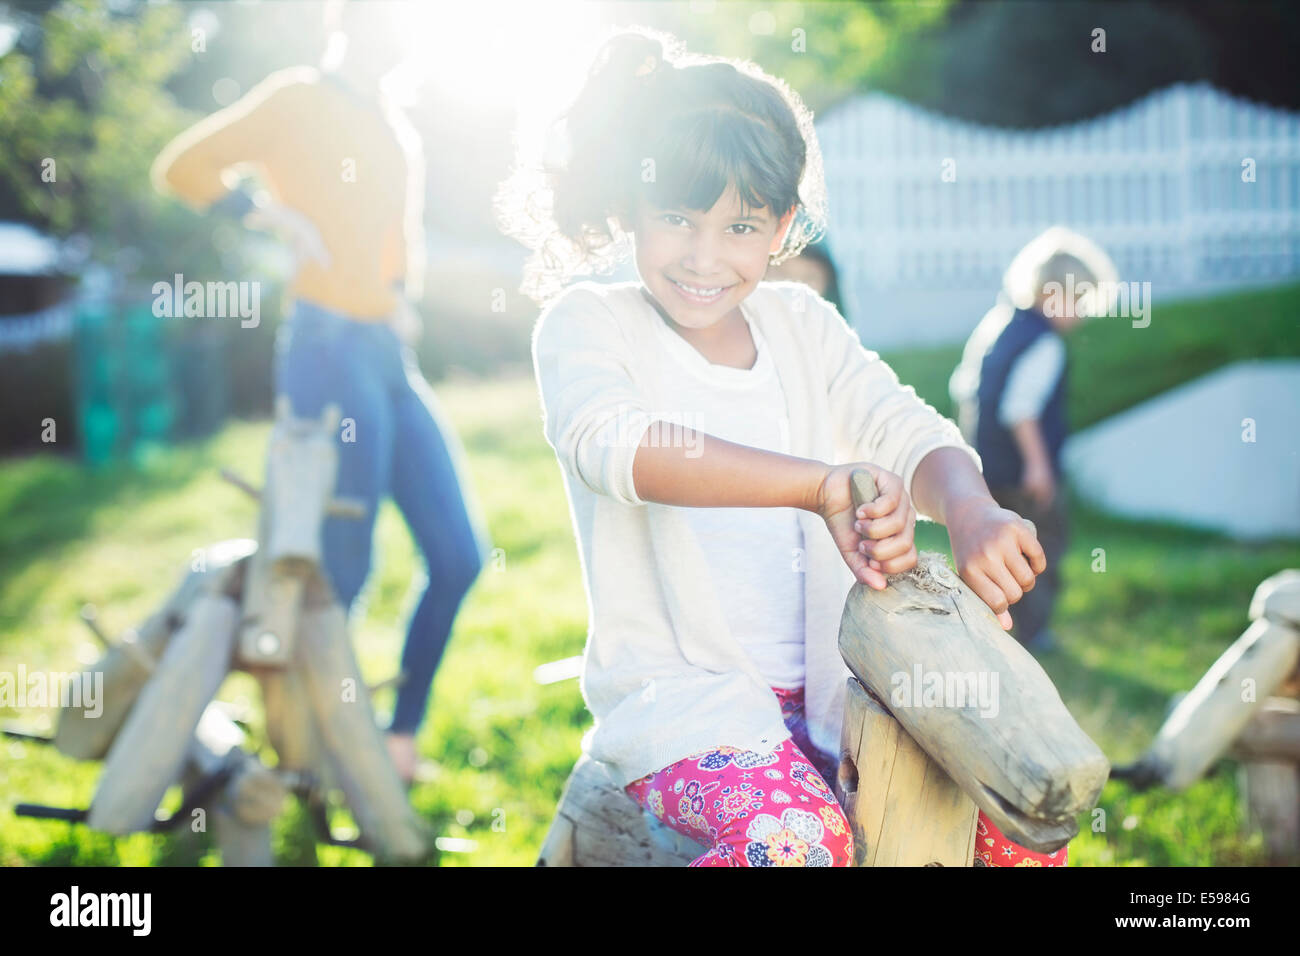 Girl smiling on rocking horse in playground - Stock Image